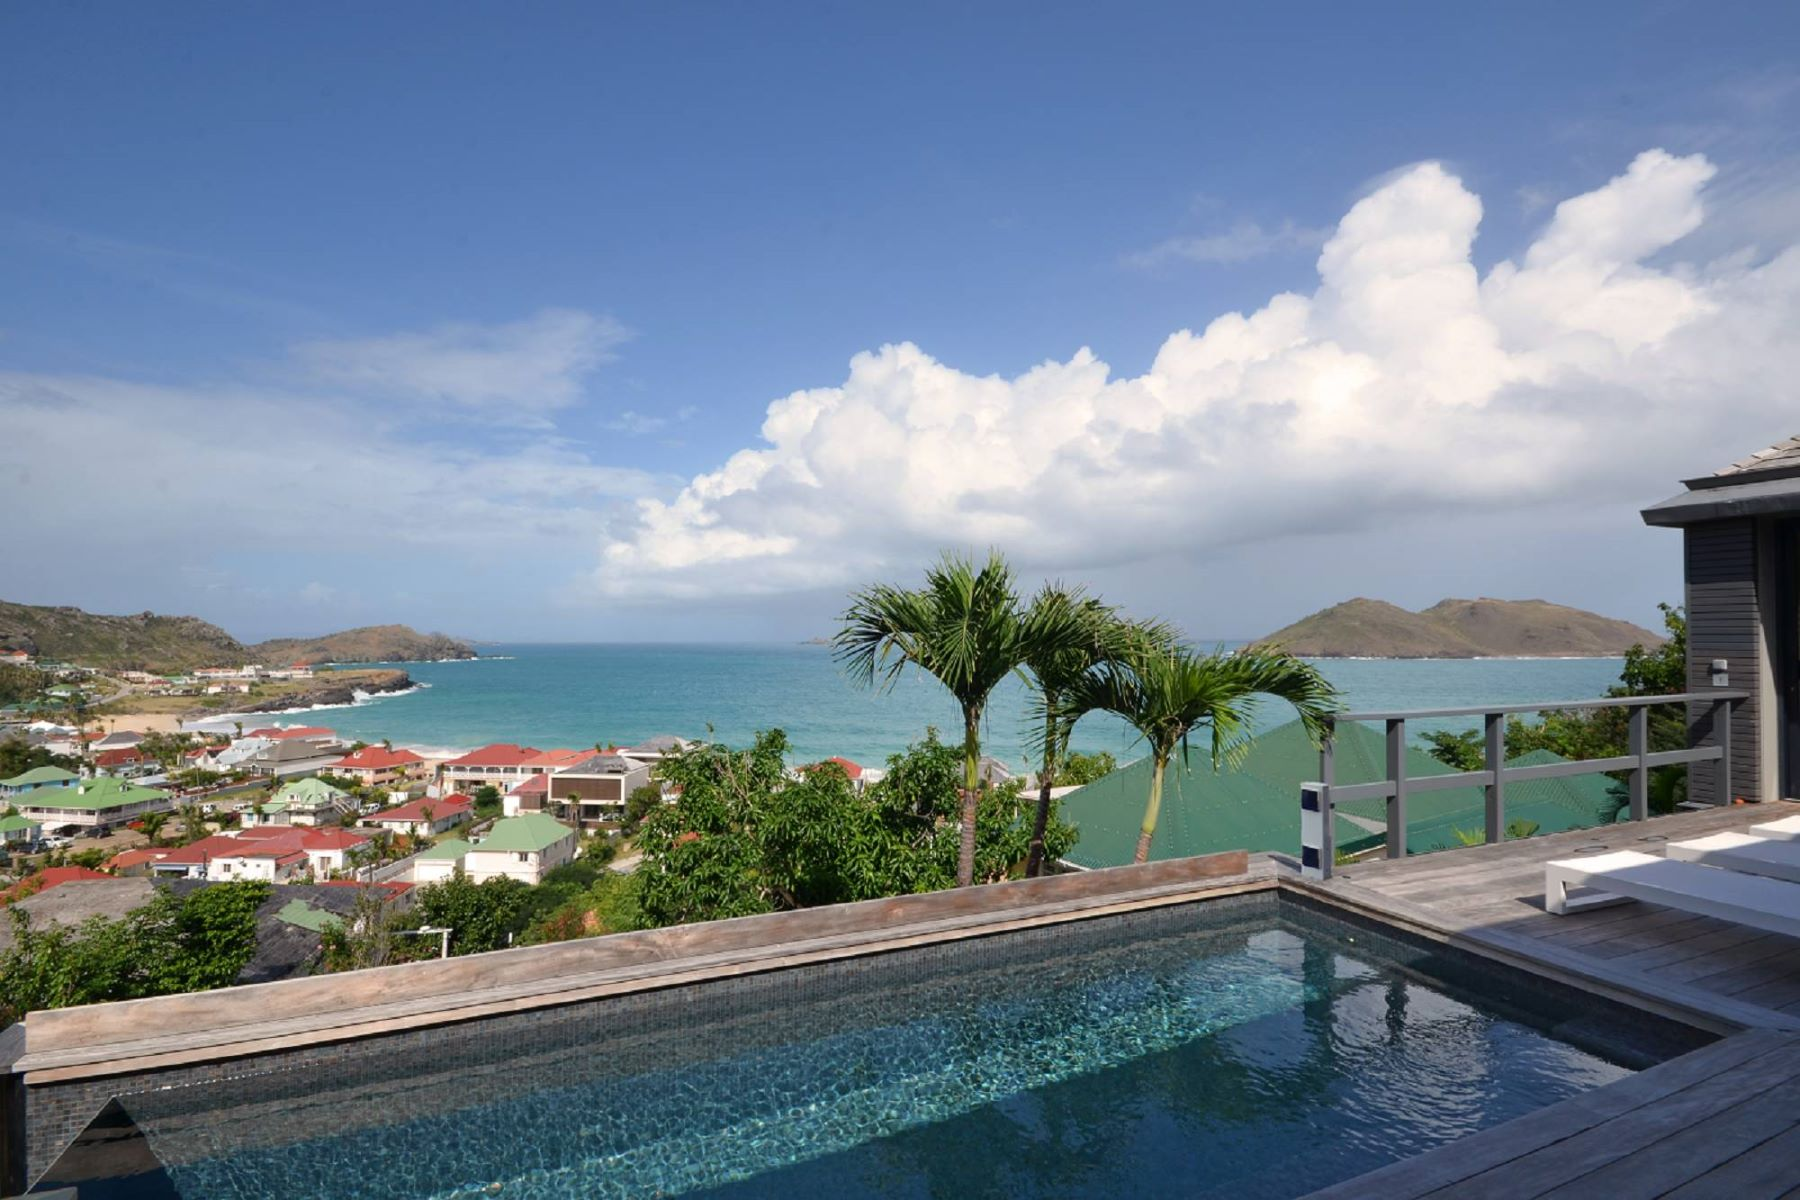 Single Family Homes for Sale at Villa Alicia Flamands Flamands, Cities In St. Barthelemy 97133 St. Barthelemy